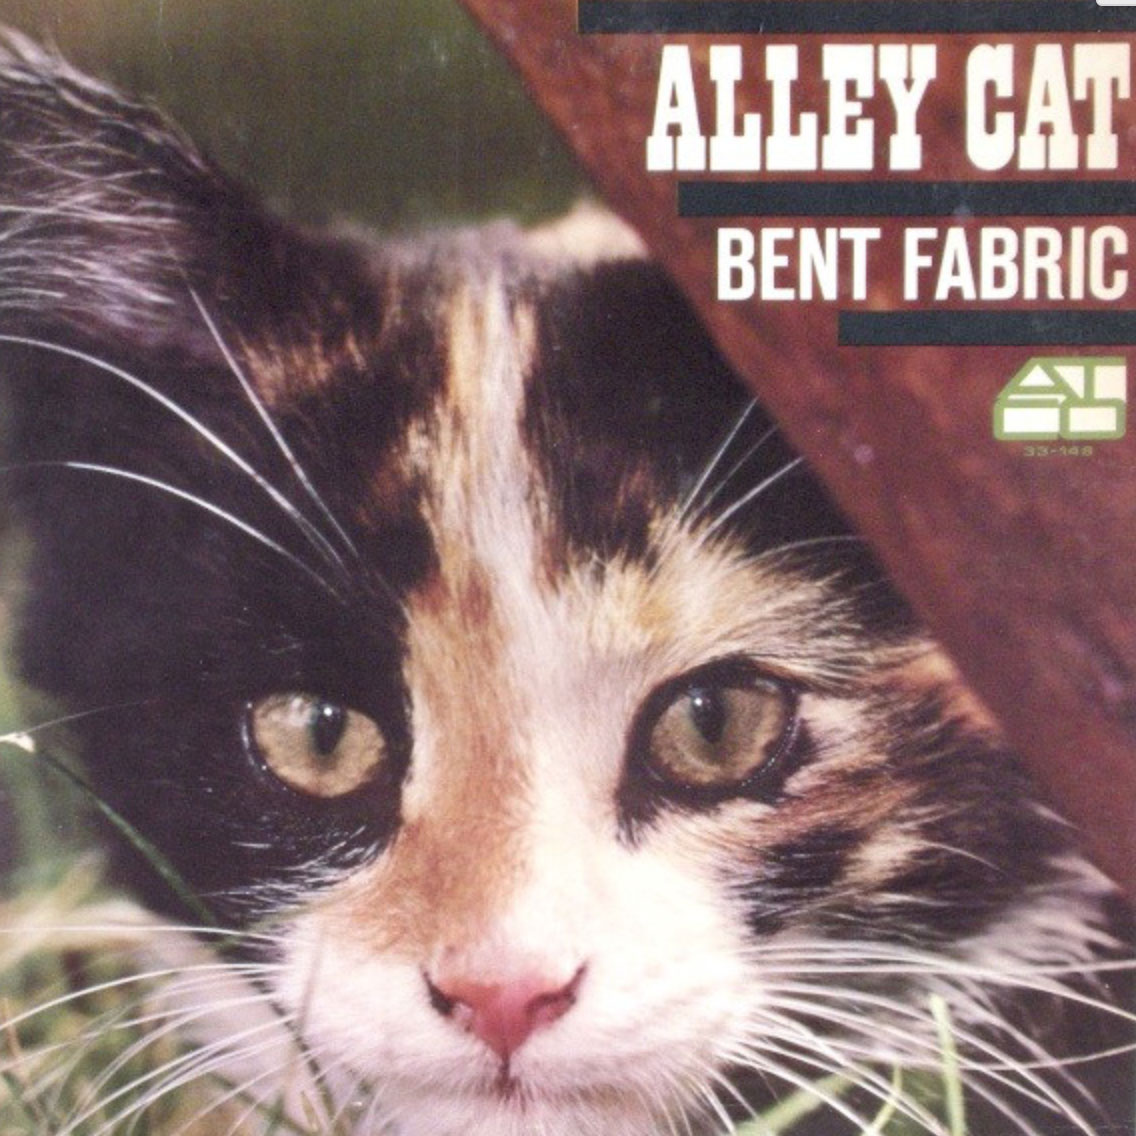 Alley-cat